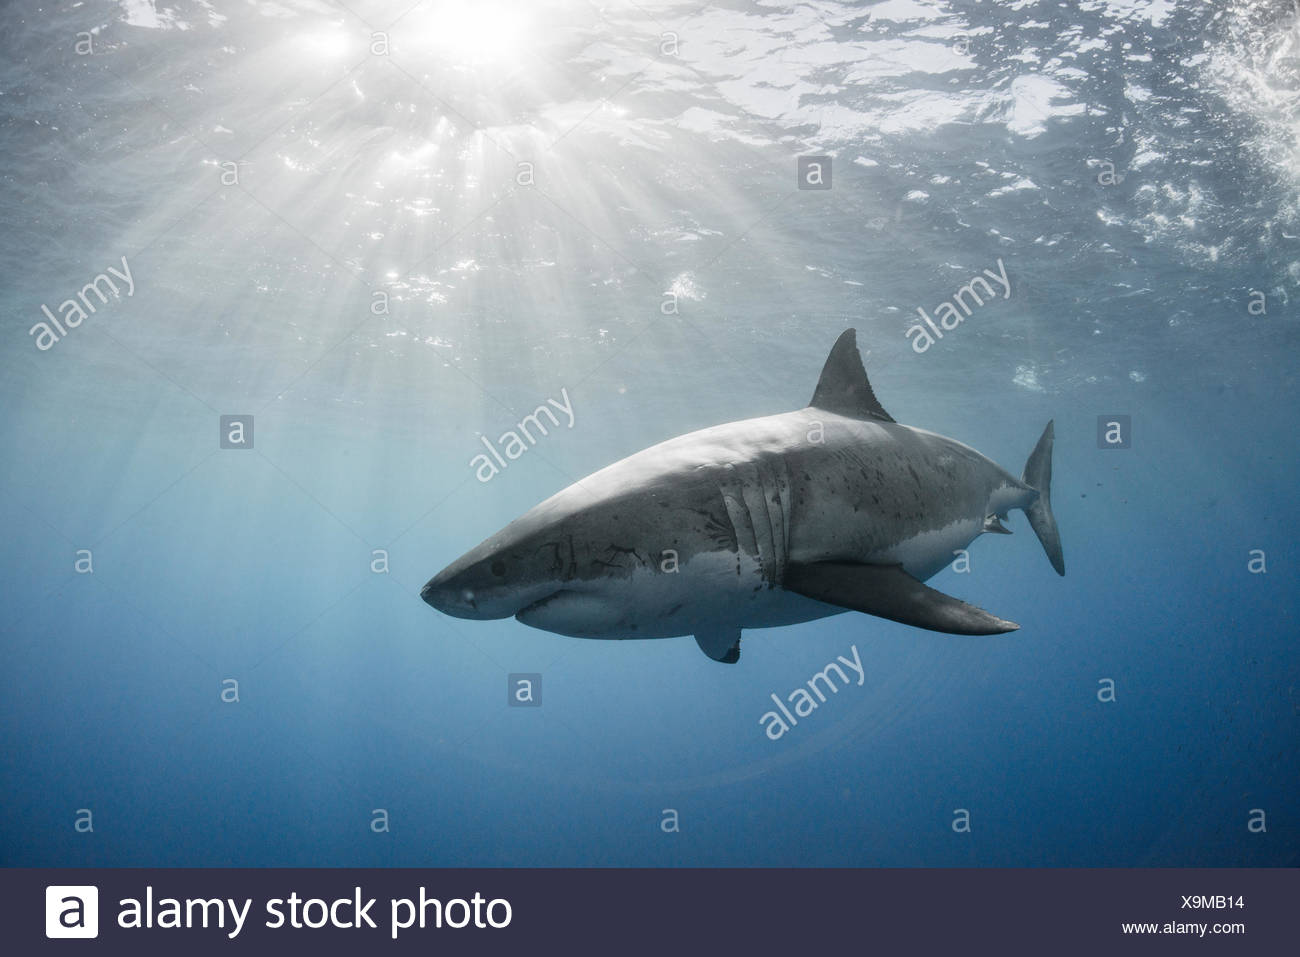 White shark cruising around the crystal blue water of Guadalupe Island, Mexico - Stock Image